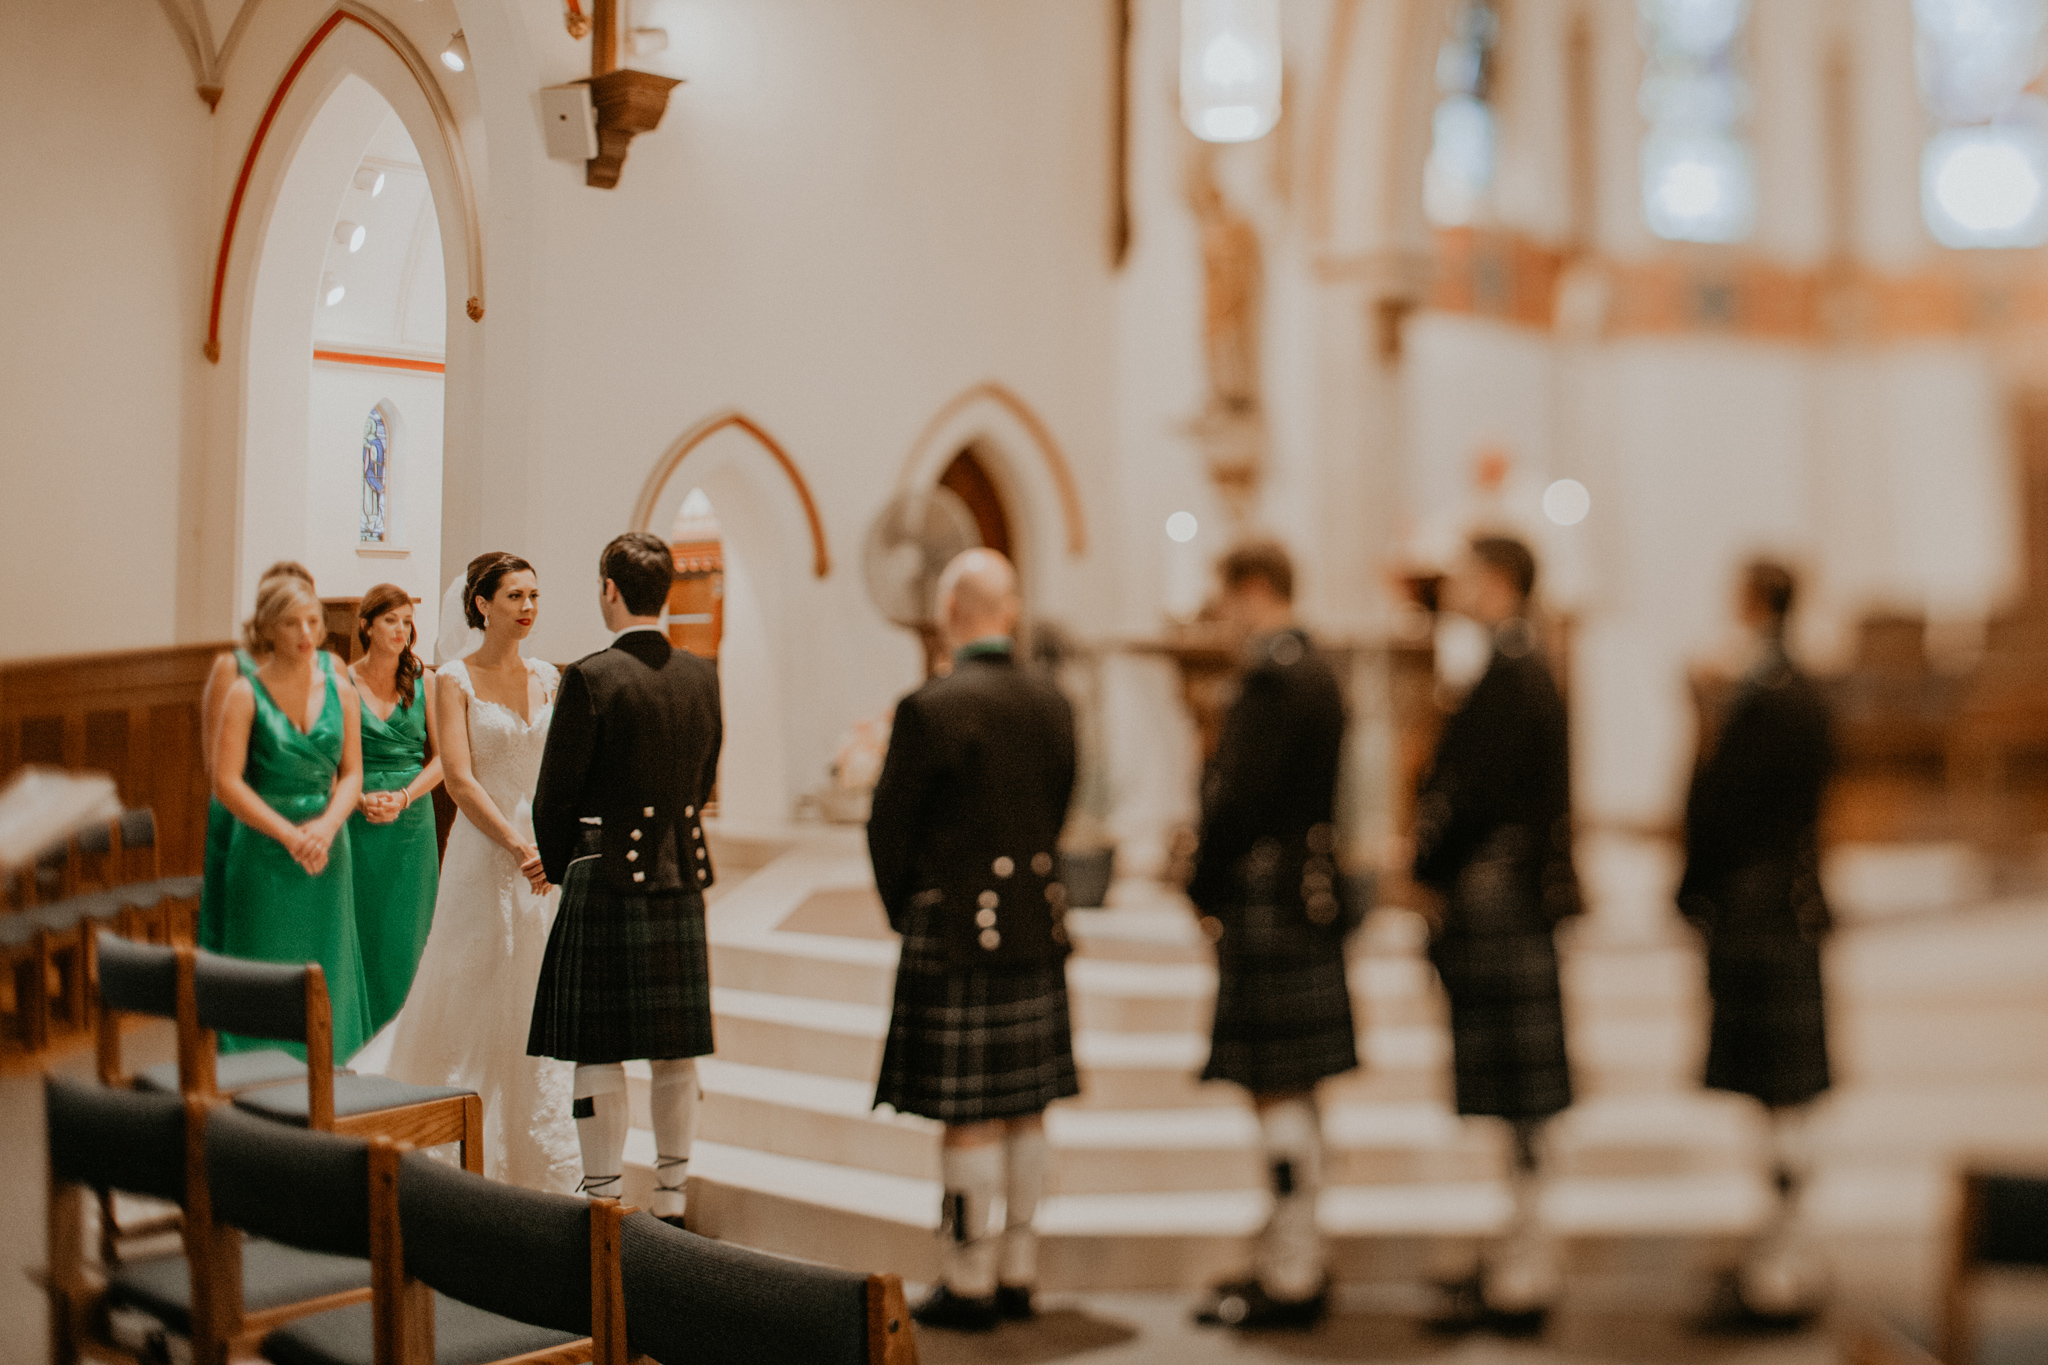 Wedding party in Scottish church wedding